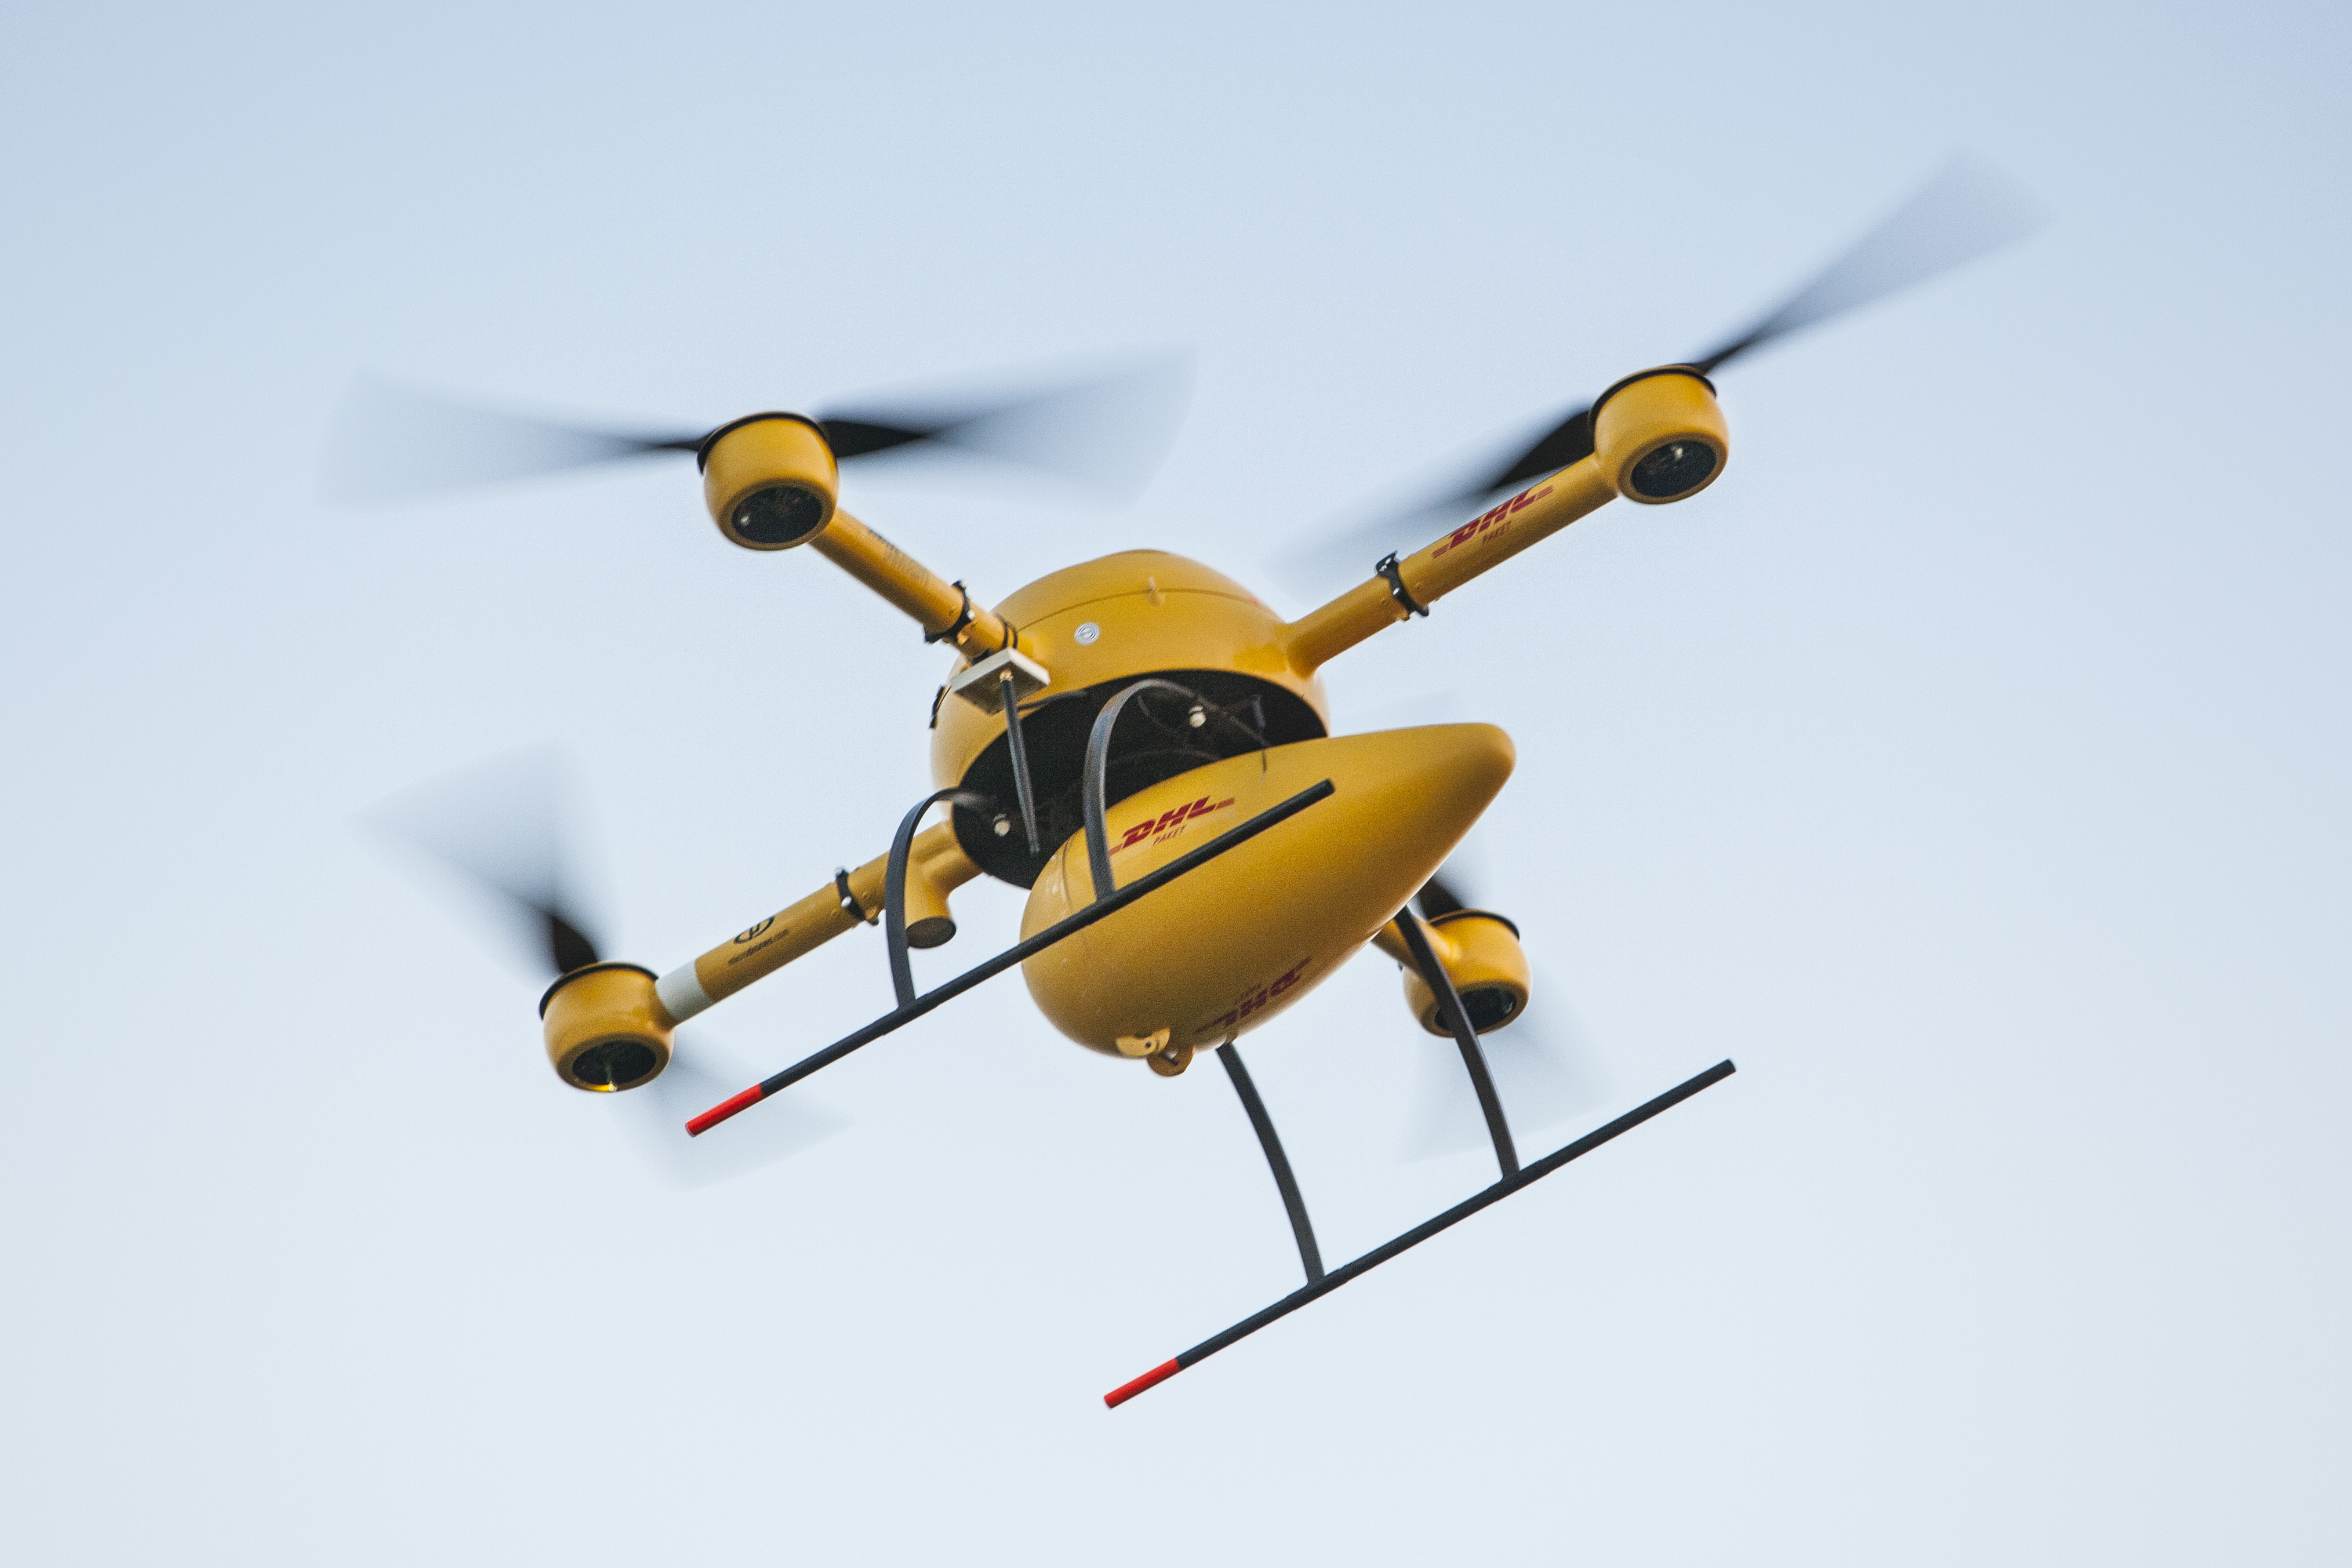 Wal-Mart Planning to Test Delivery Drones